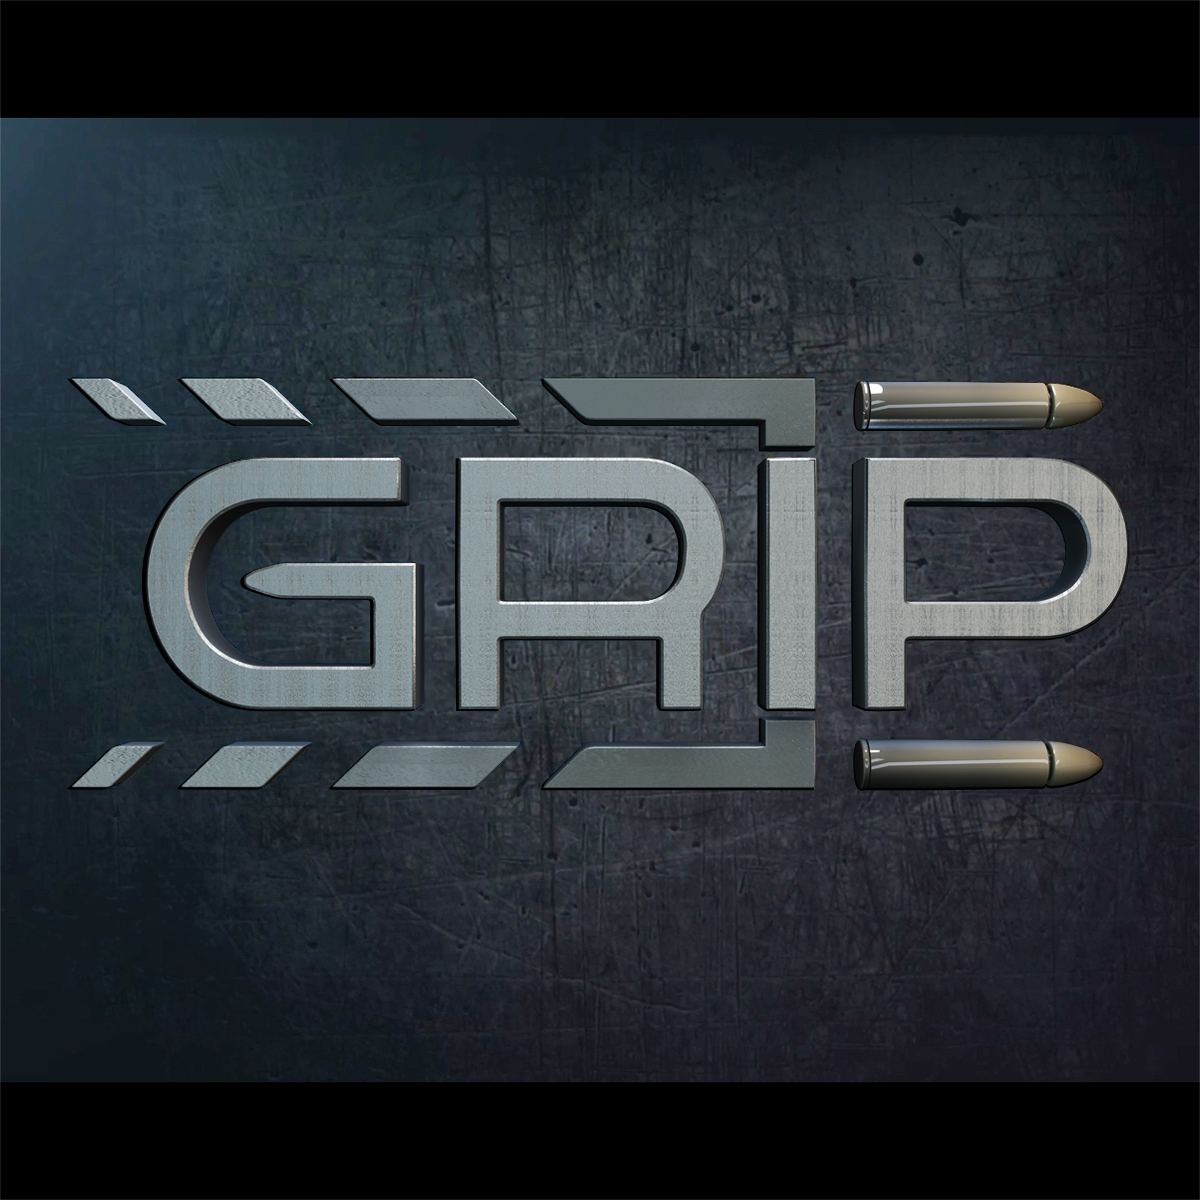 Grip action racing shooter launched on Greenlight for Linux and Windows PC